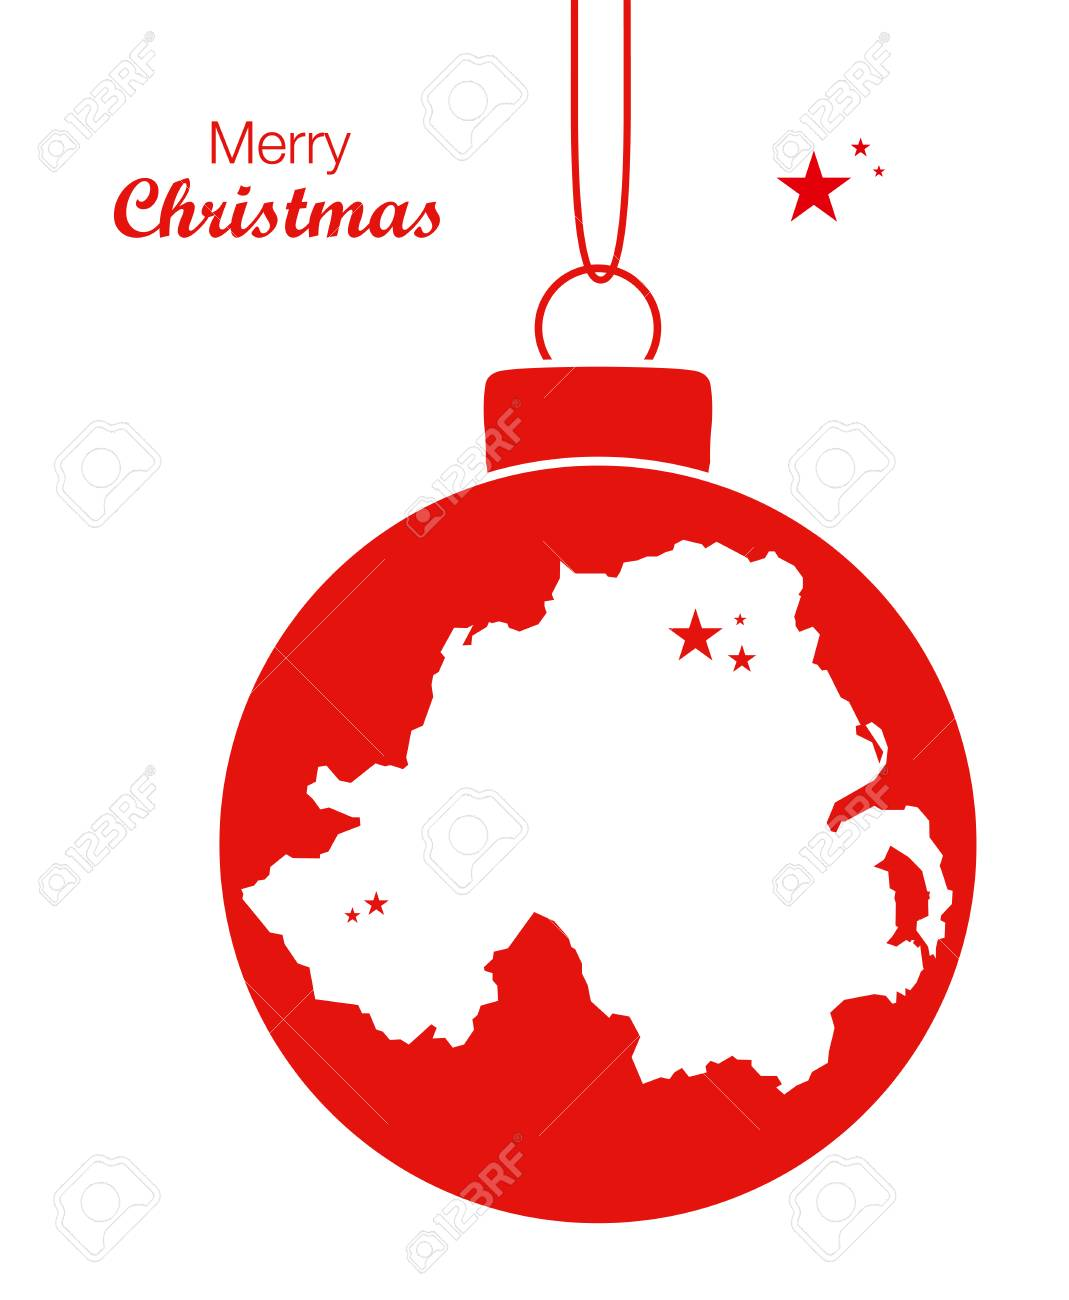 Merry Christmas Map Northern Ireland Royalty Free Cliparts, Vectors ...